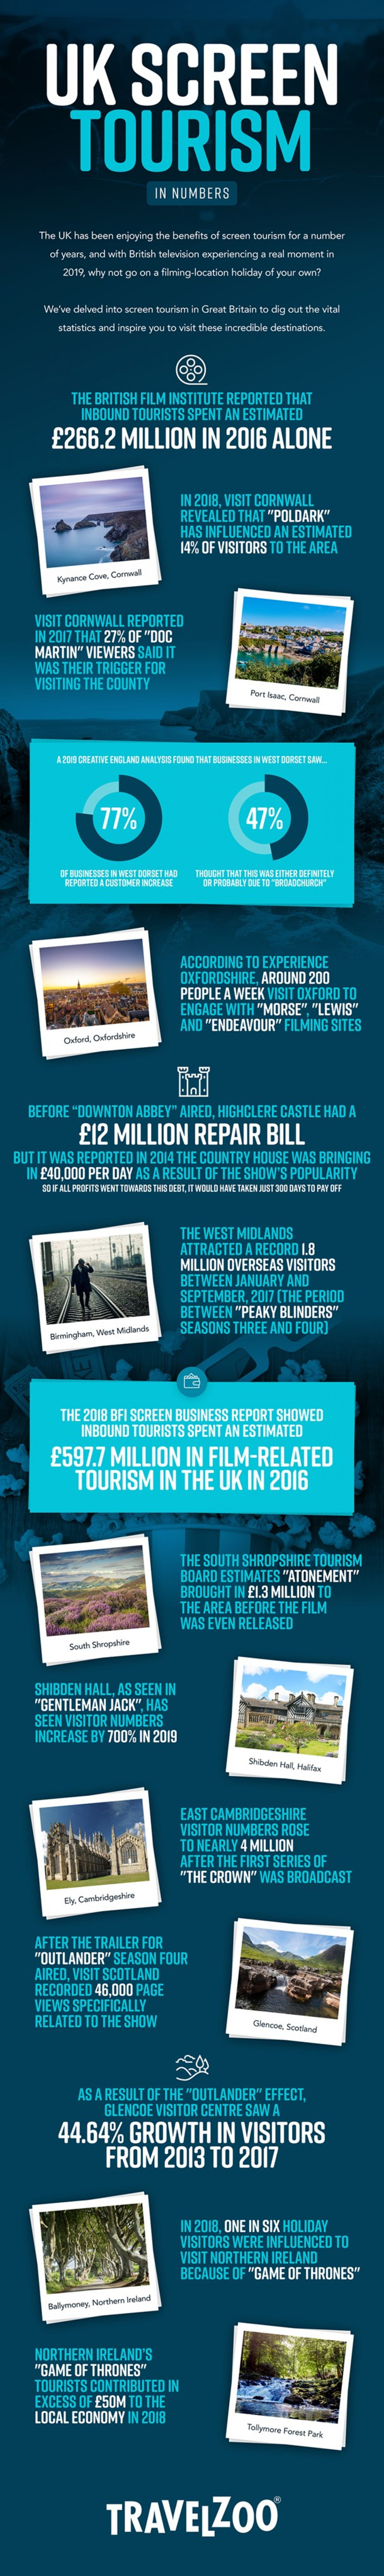 UK Screen Tourism in Numbers Infographic